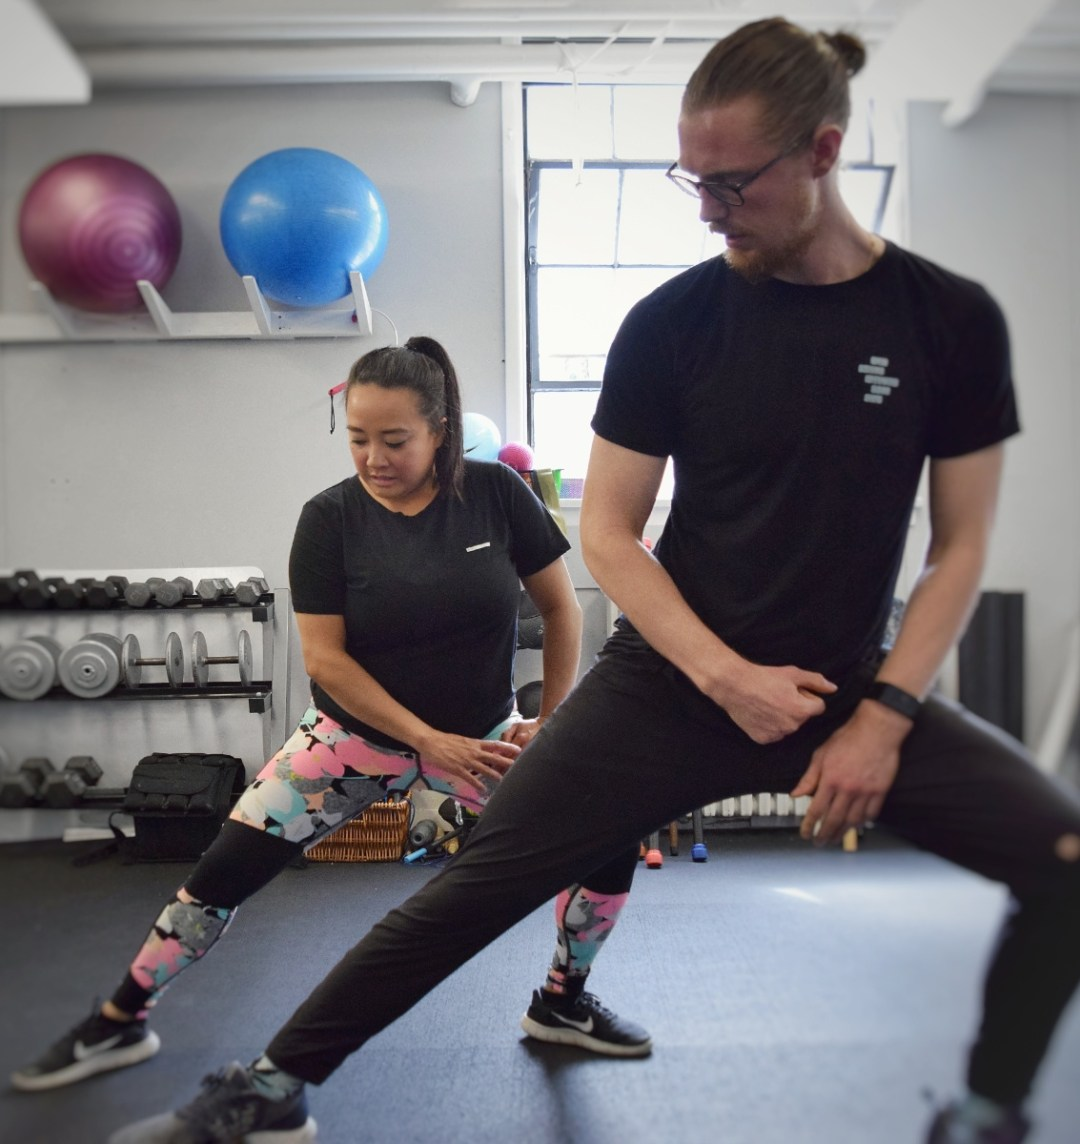 physiotherapist doing exercise with patient